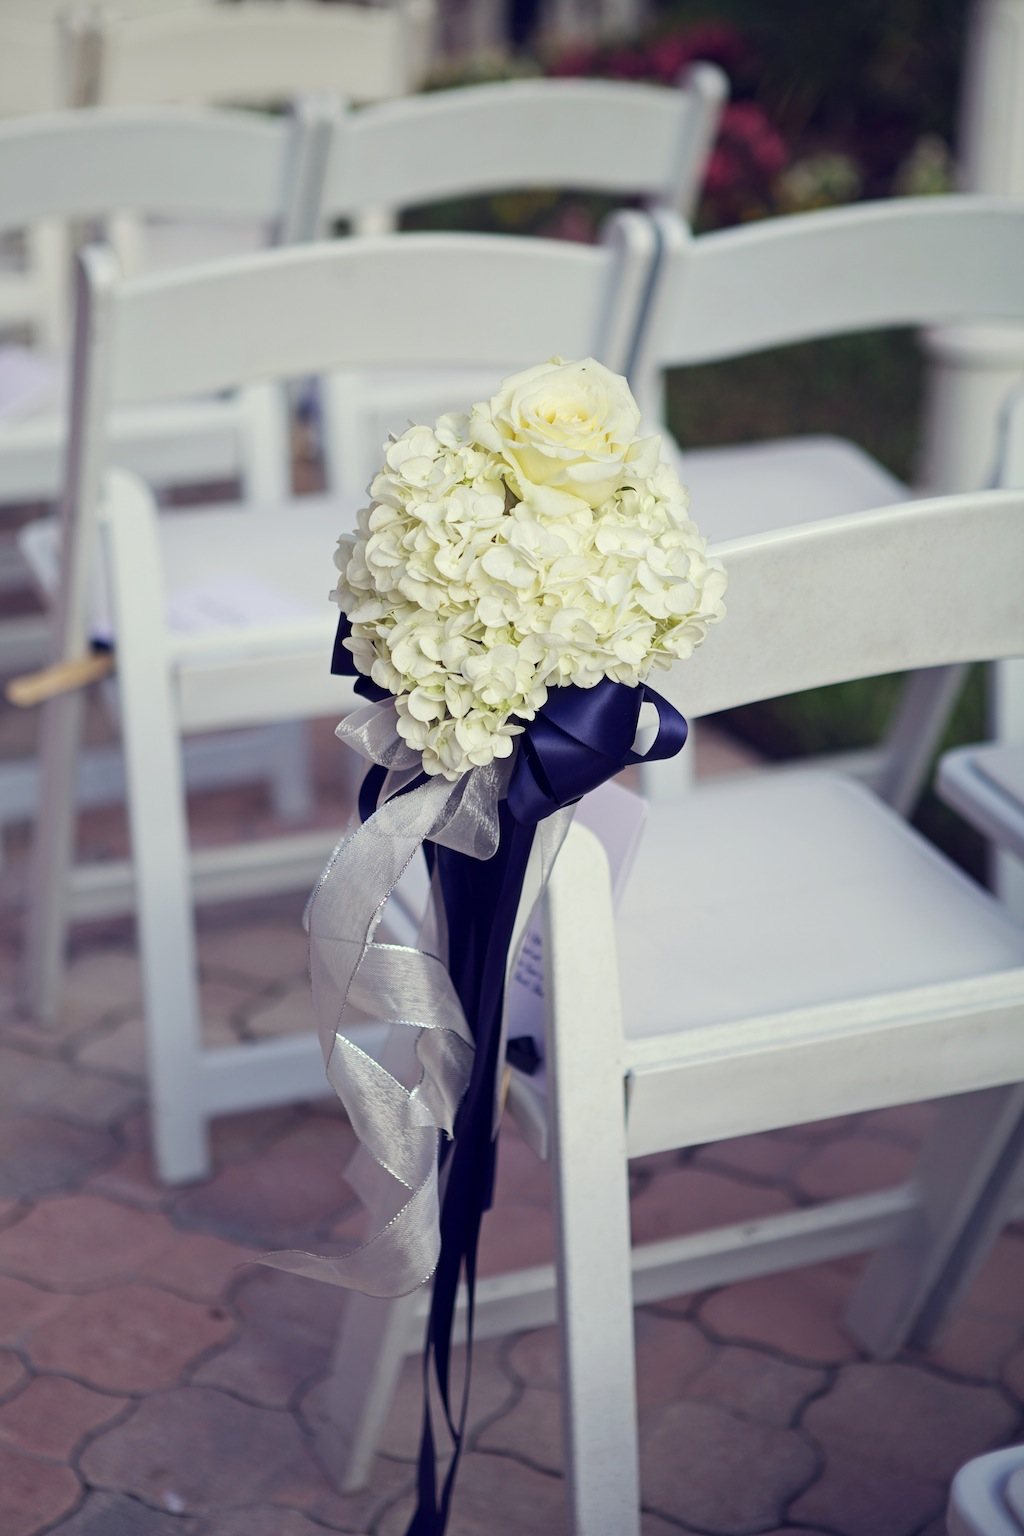 Wedding ceremony chair - White Wedding Ceremony Aisle Chair Decor Flowers